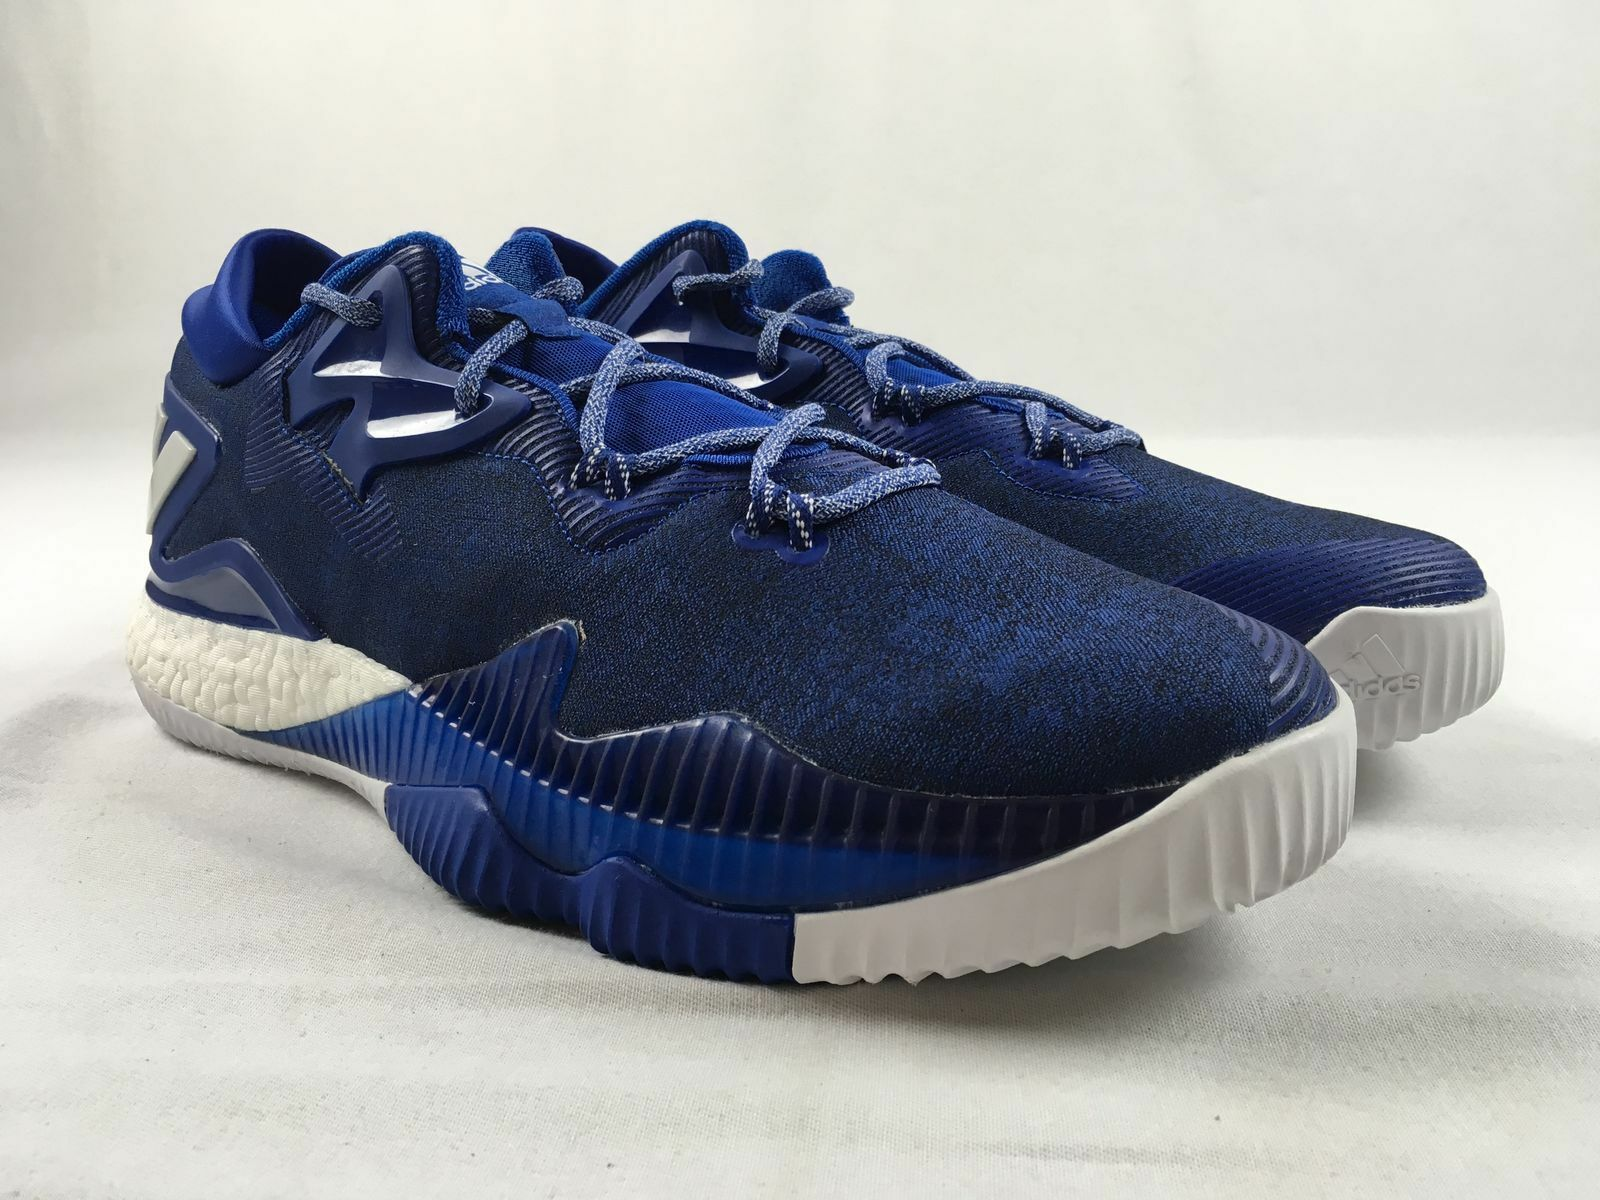 timeless design 690d1 791d0 NEW NEW NEW adidas - Blue Basketball Shoes (Men s Multiple Sizes) 441ab5